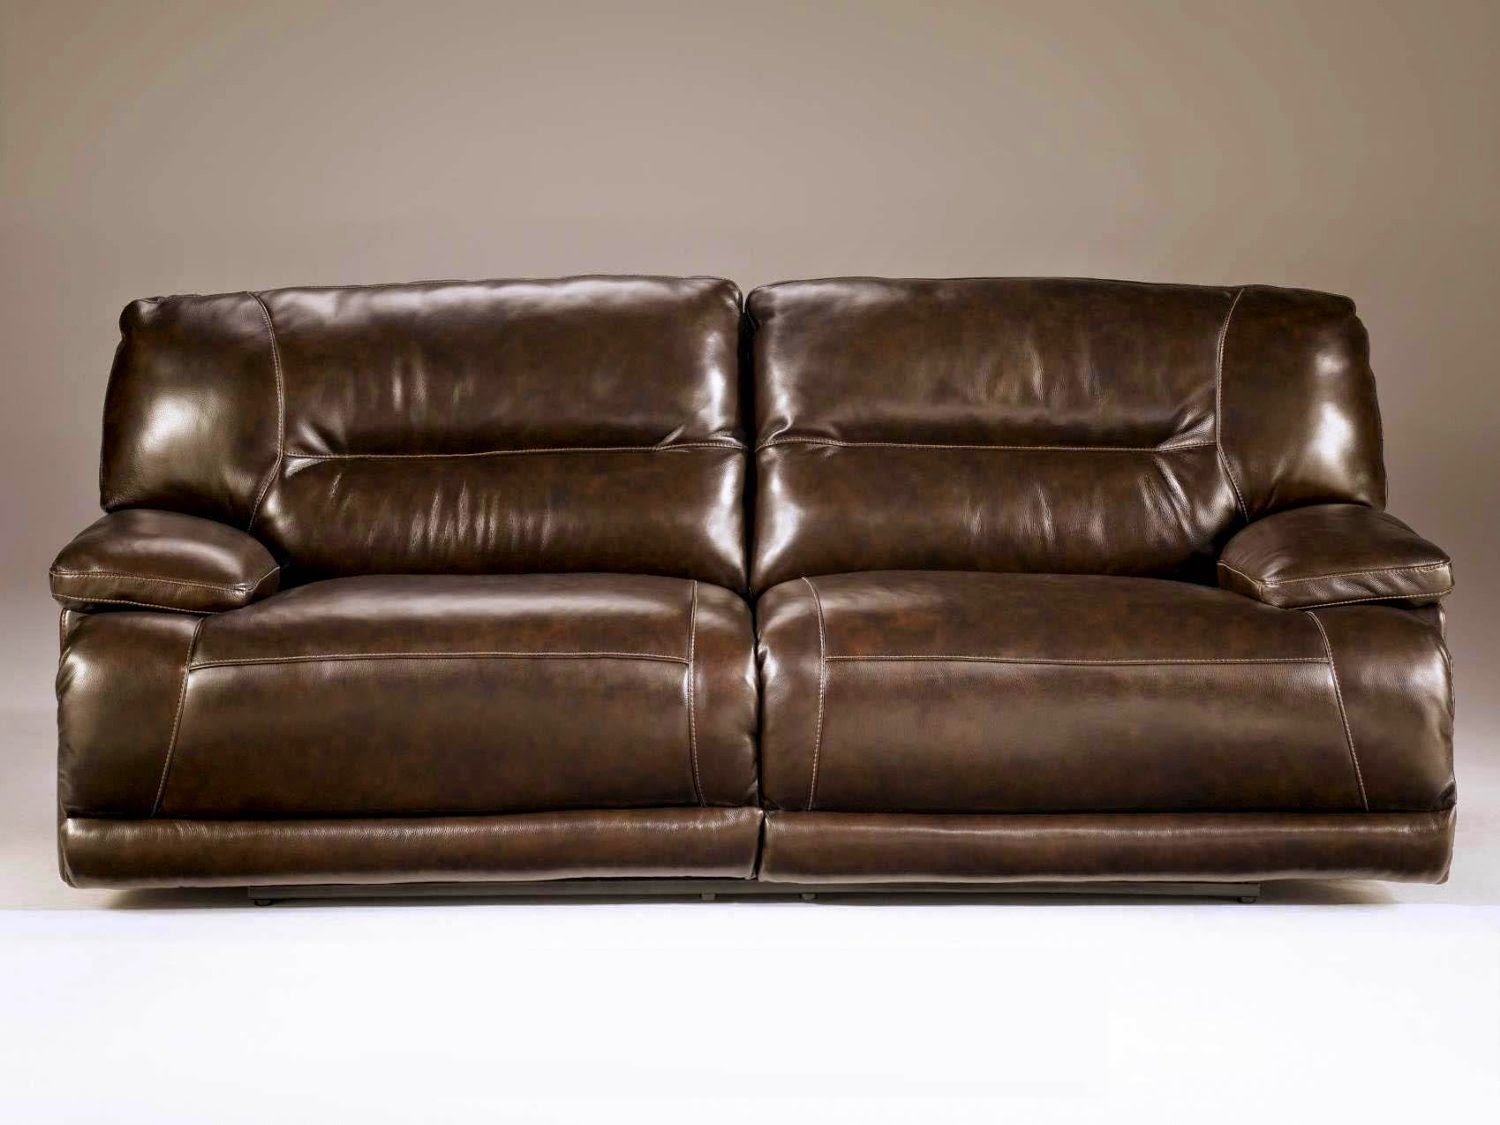 The Best Reclining Sofa Reviews: Power Reclining Leather ...